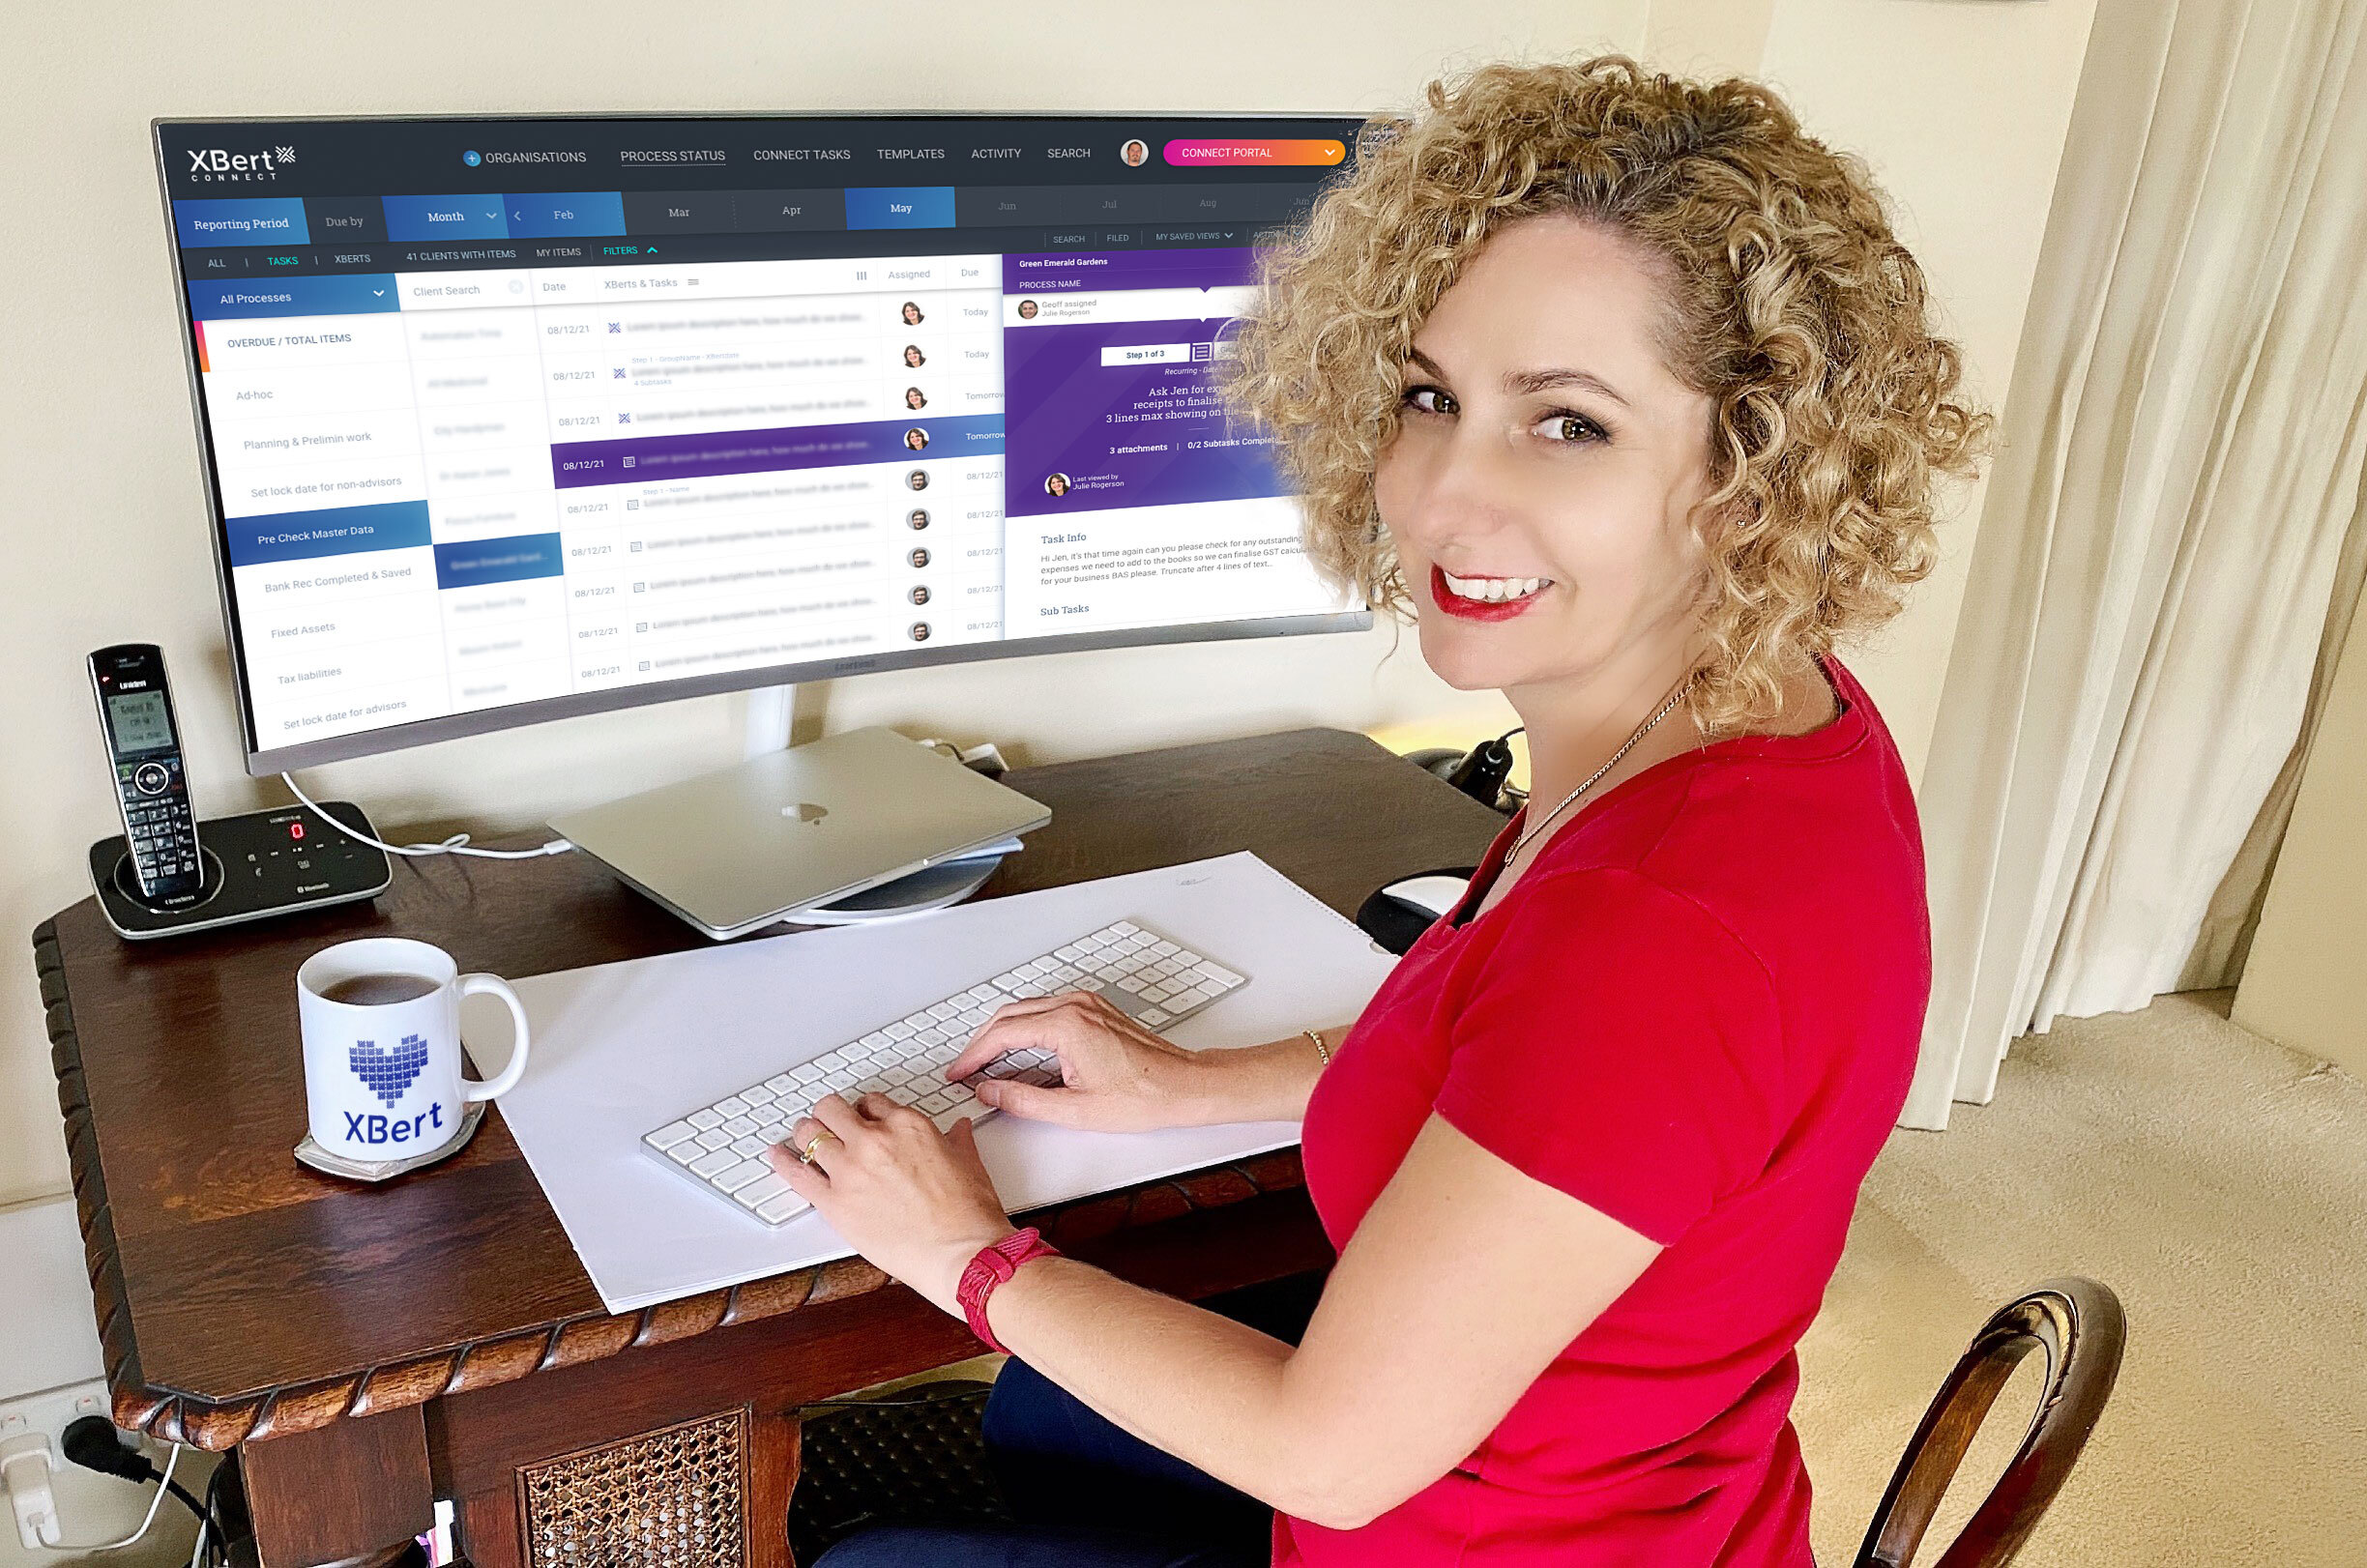 Nicole Lynch says bookkeepers can sleep easy knowing XBert's ai-audit and risk alerts will help them discover any issues, inconsistencies and errors in their Xero accounting software in real time.